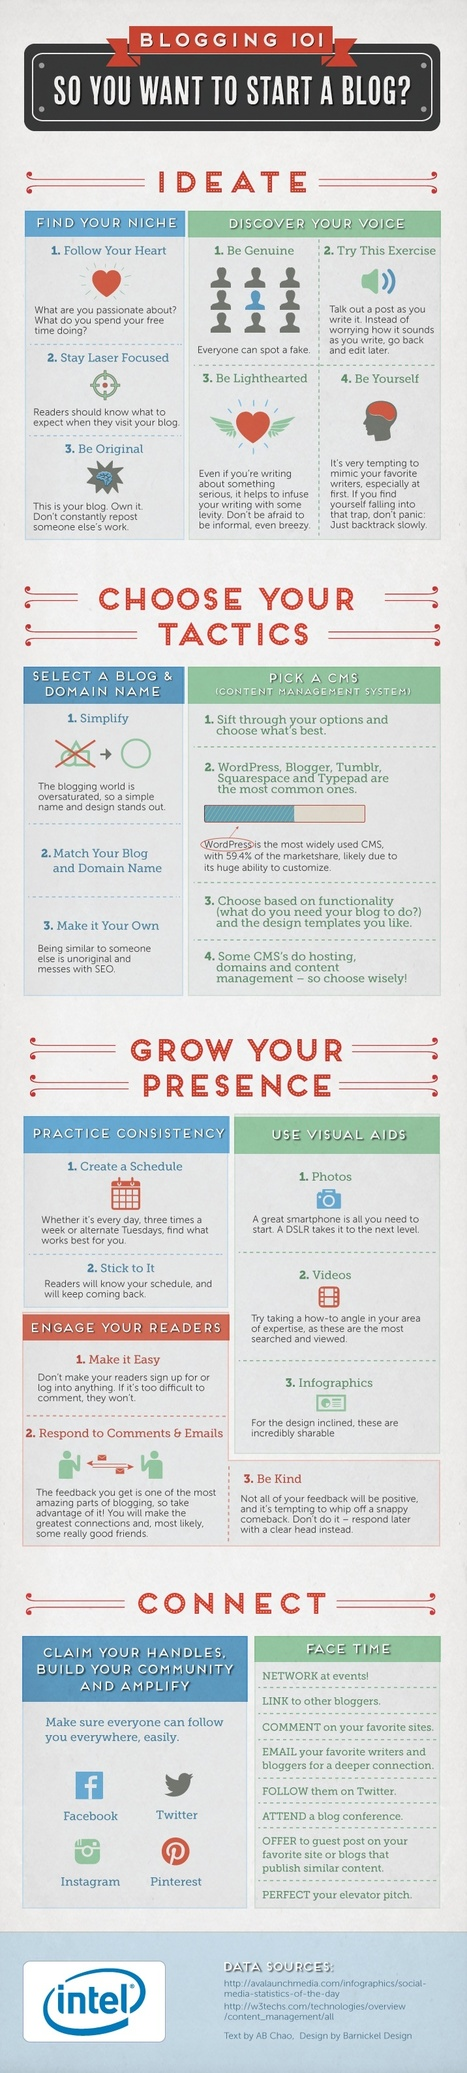 So You Want To Start A Blog? (Infographic) | Technology for Learning | Scoop.it